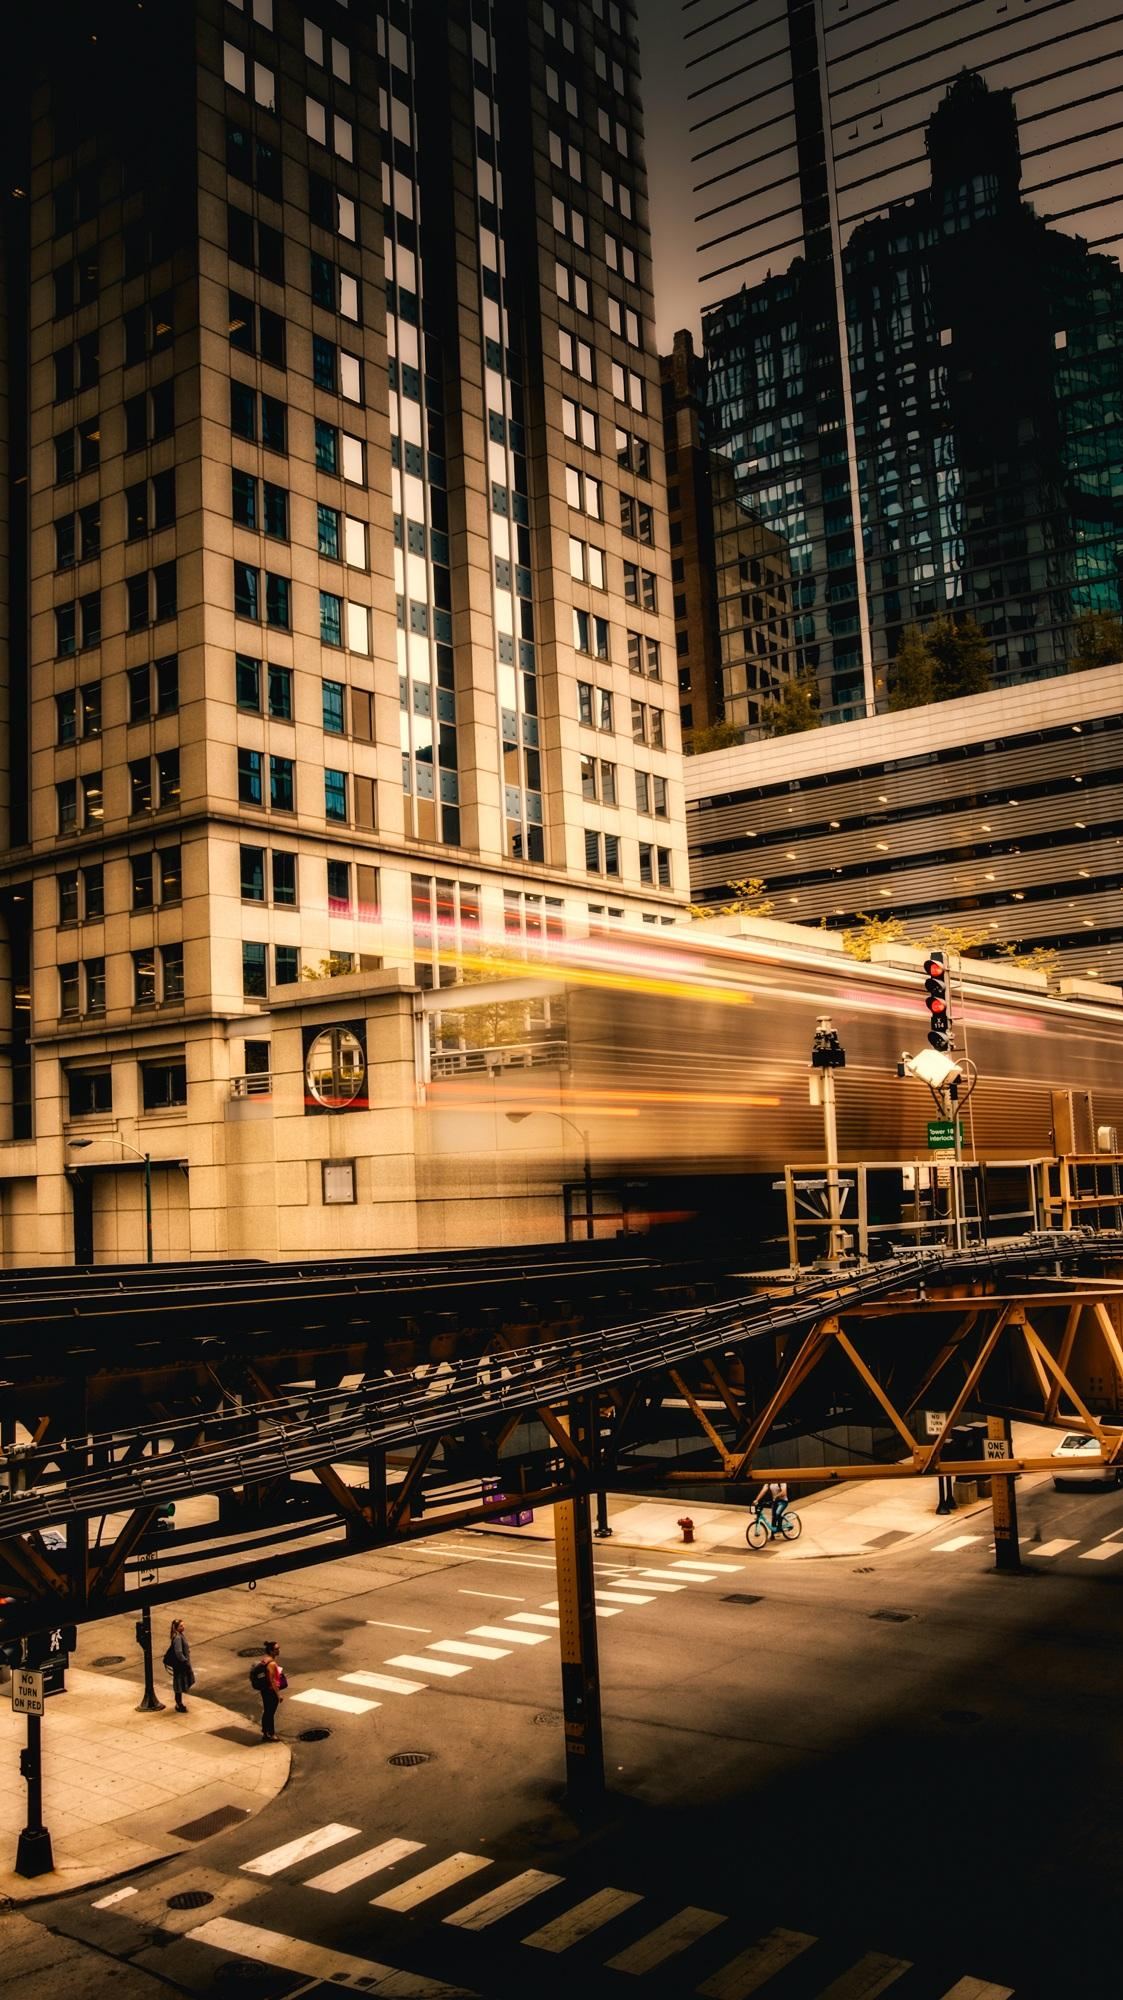 Applications of Big Data In Transit Planning